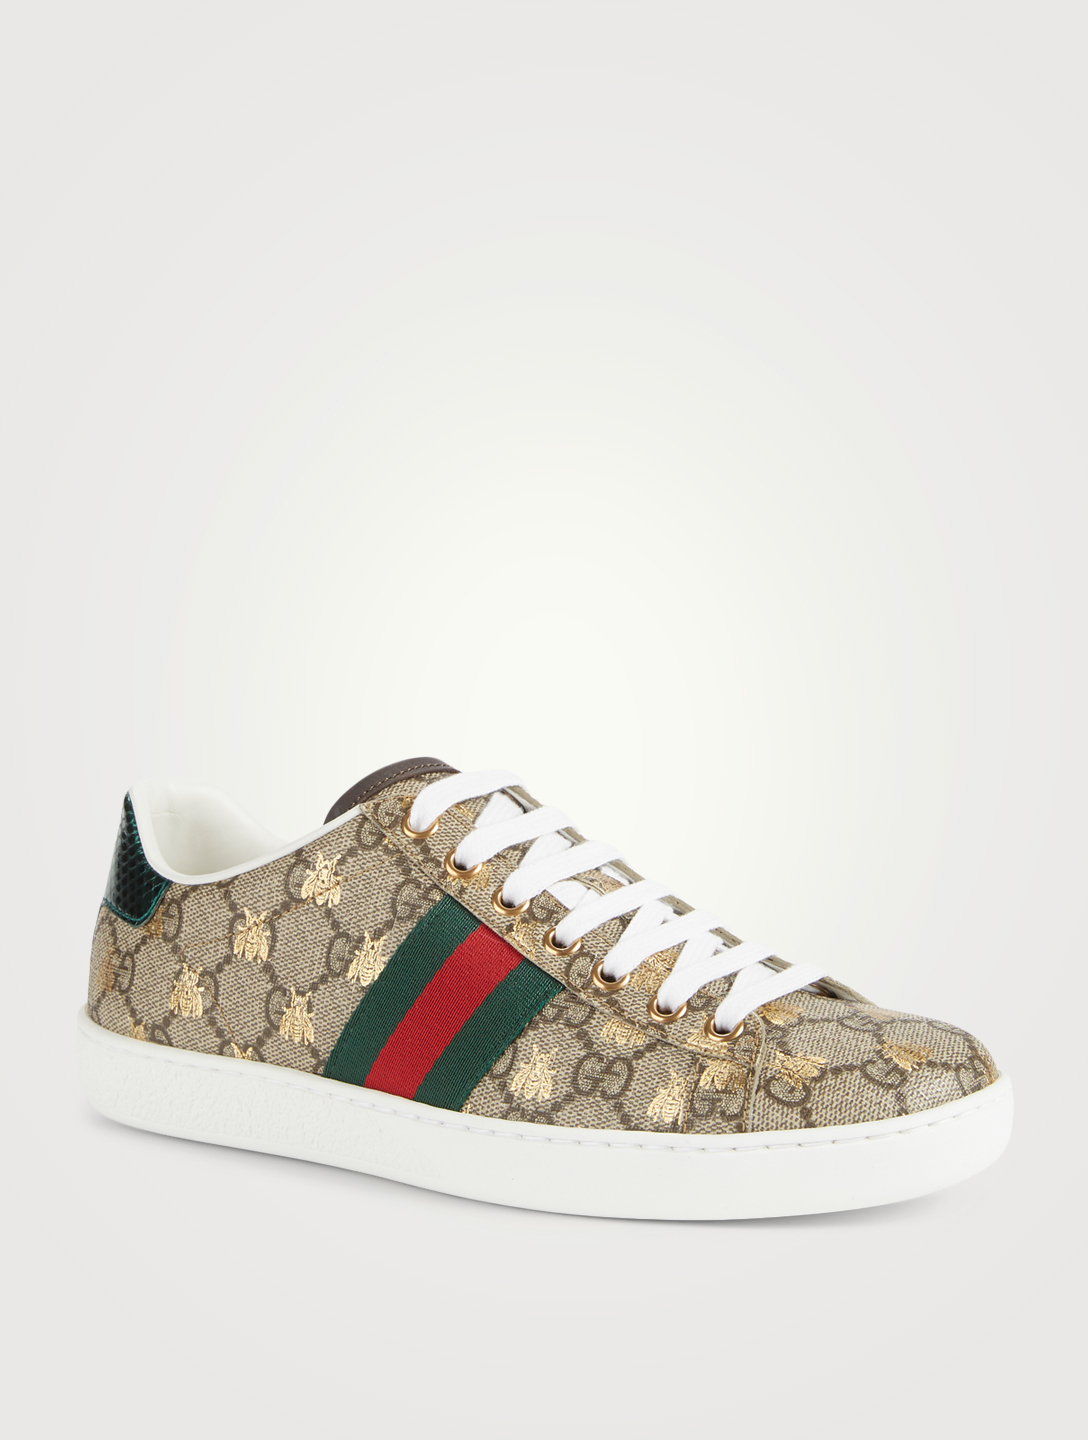 0c495f2d7ad ... GUCCI Ace GG Supreme Sneakers With Bees Womens Neutral ...